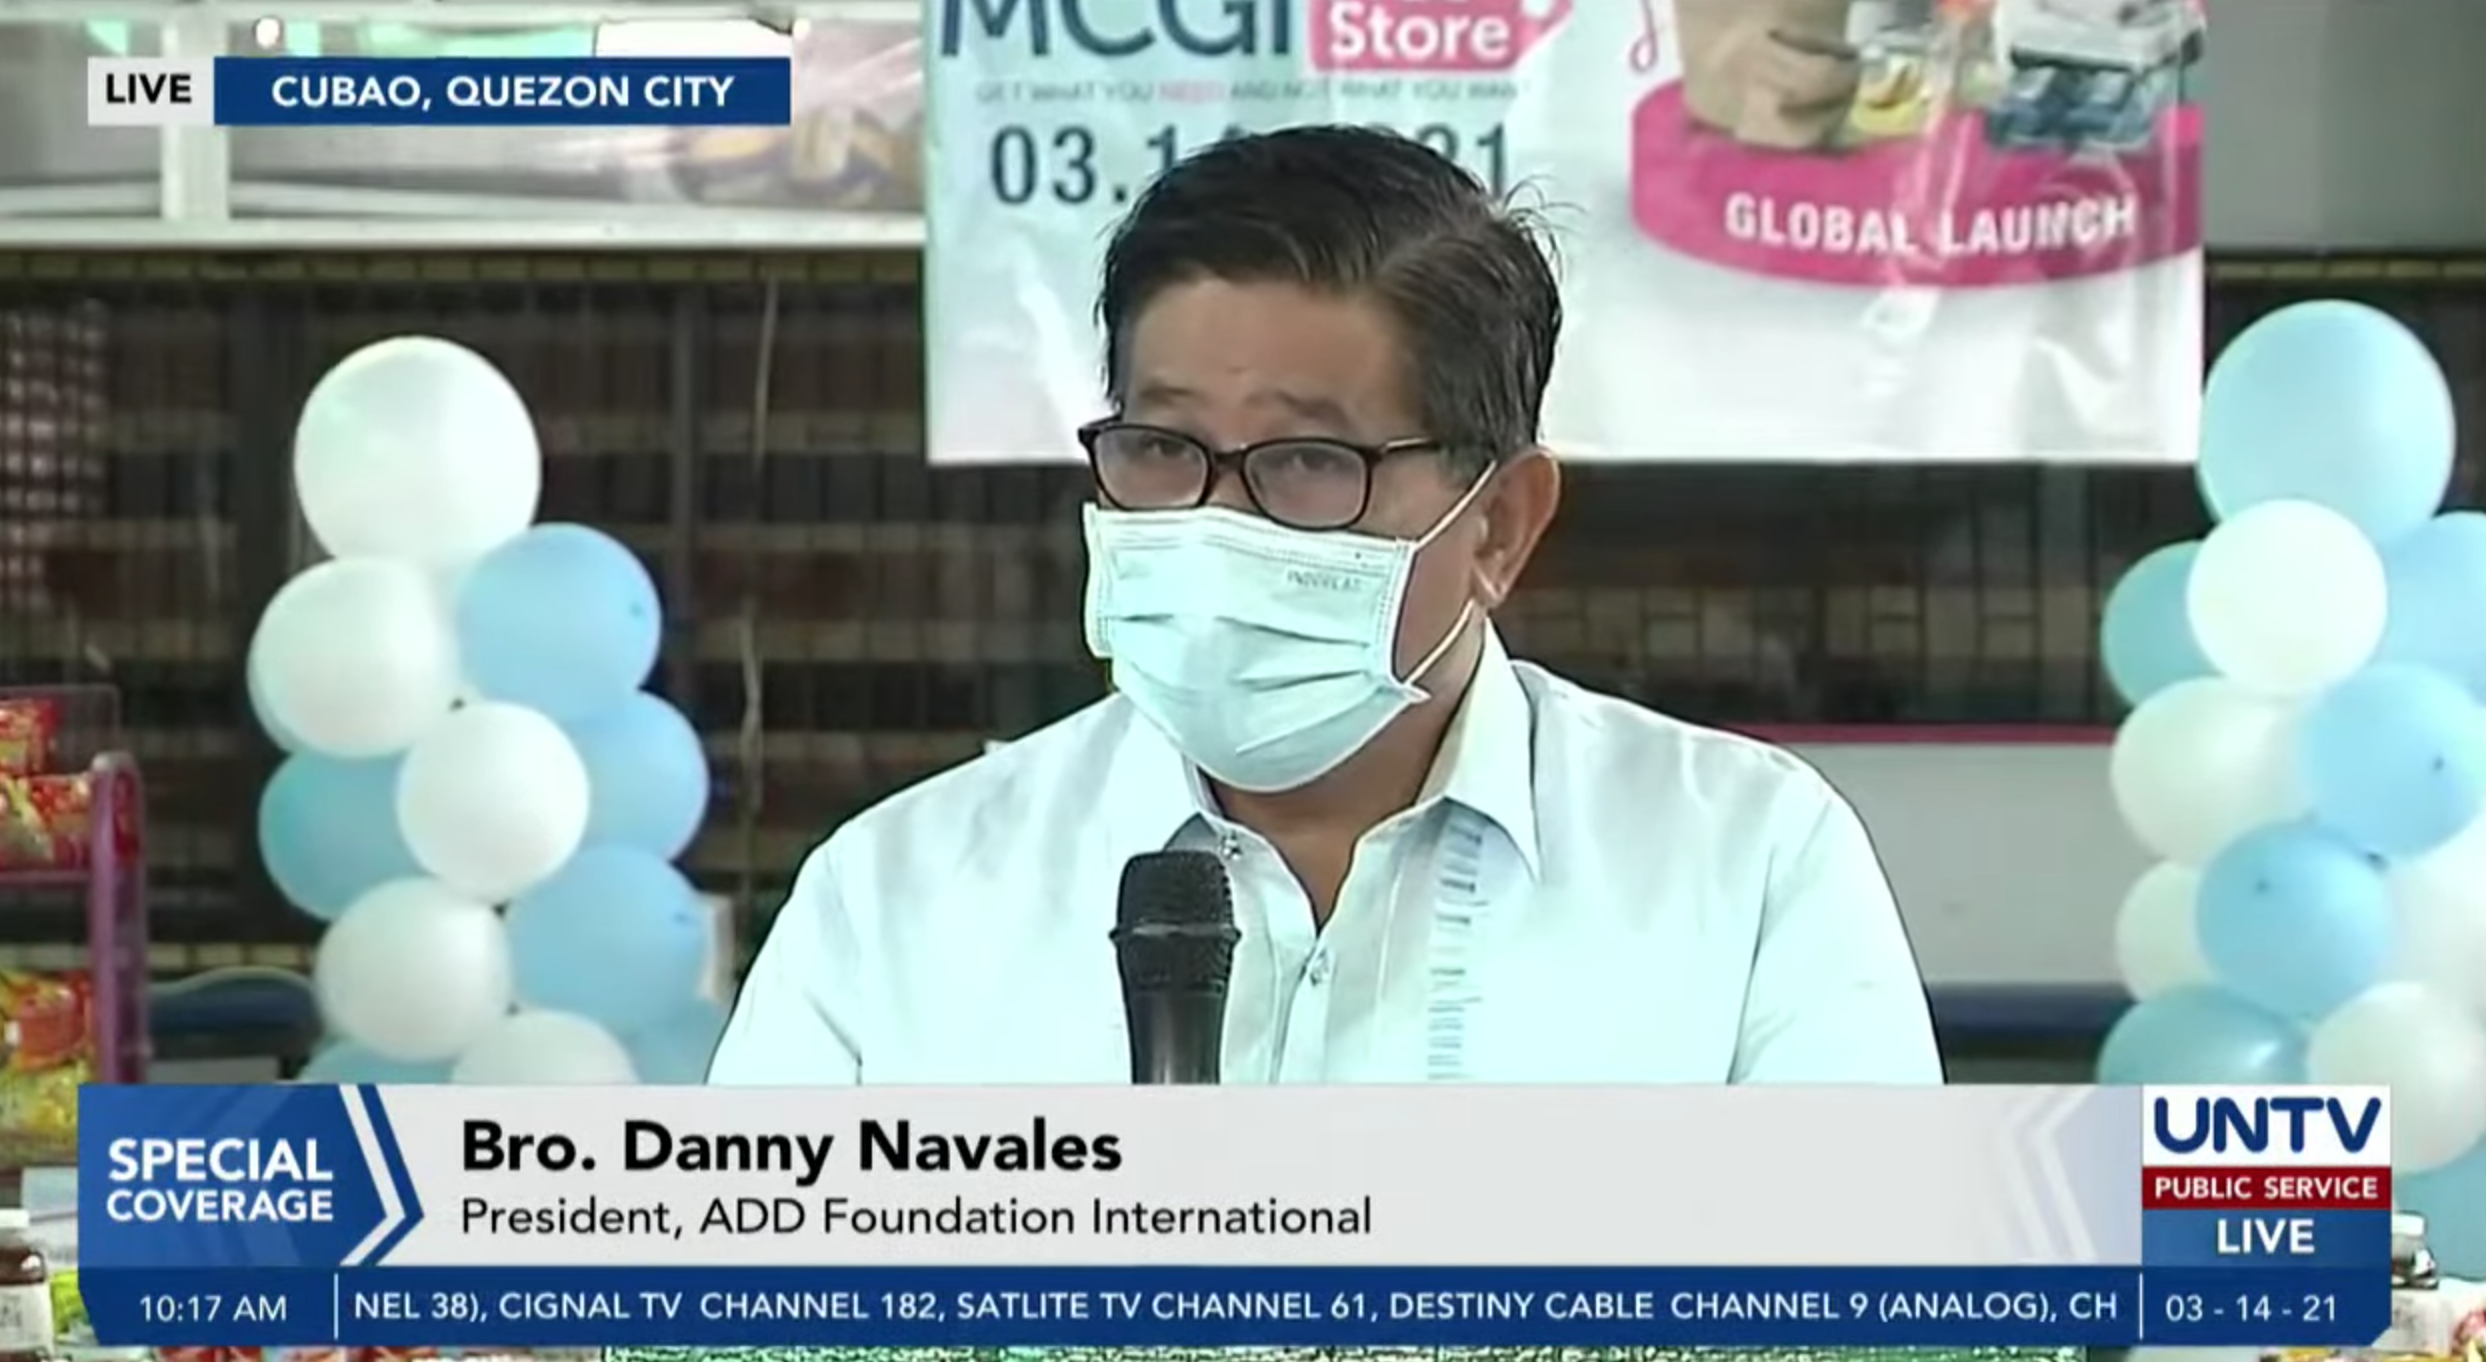 Bro. Danny Navales during the MCGI Free Store launch